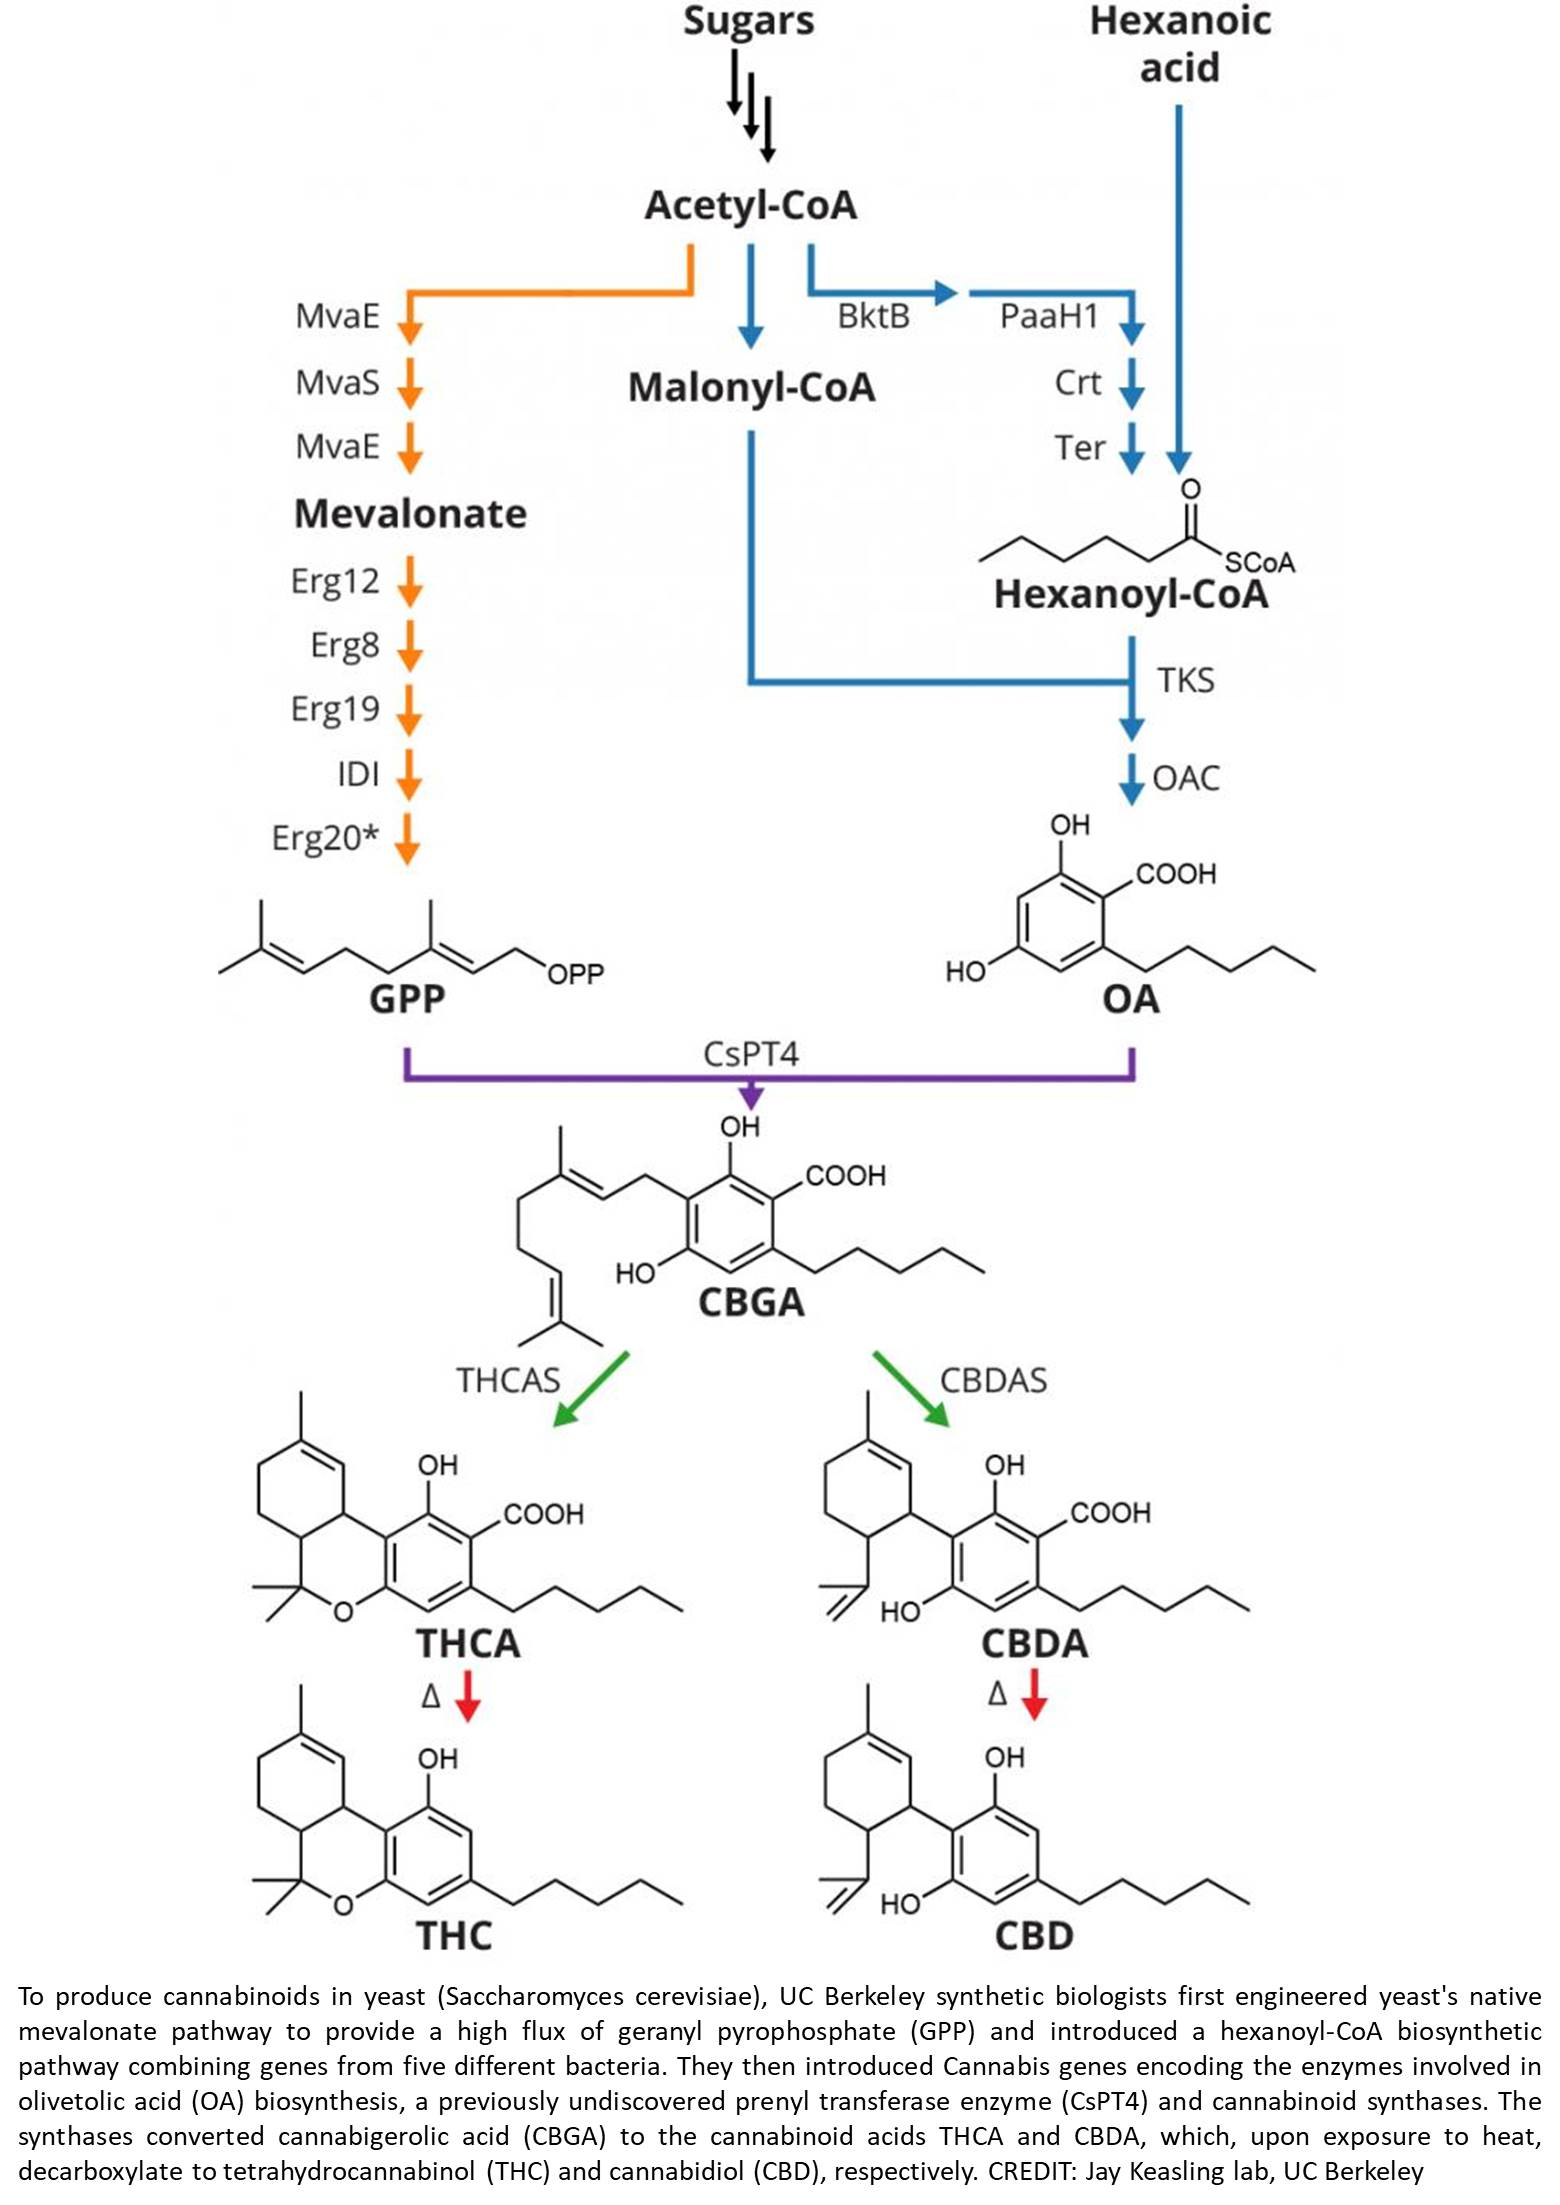 Complete biosynthesis of cannabinoids in yeast